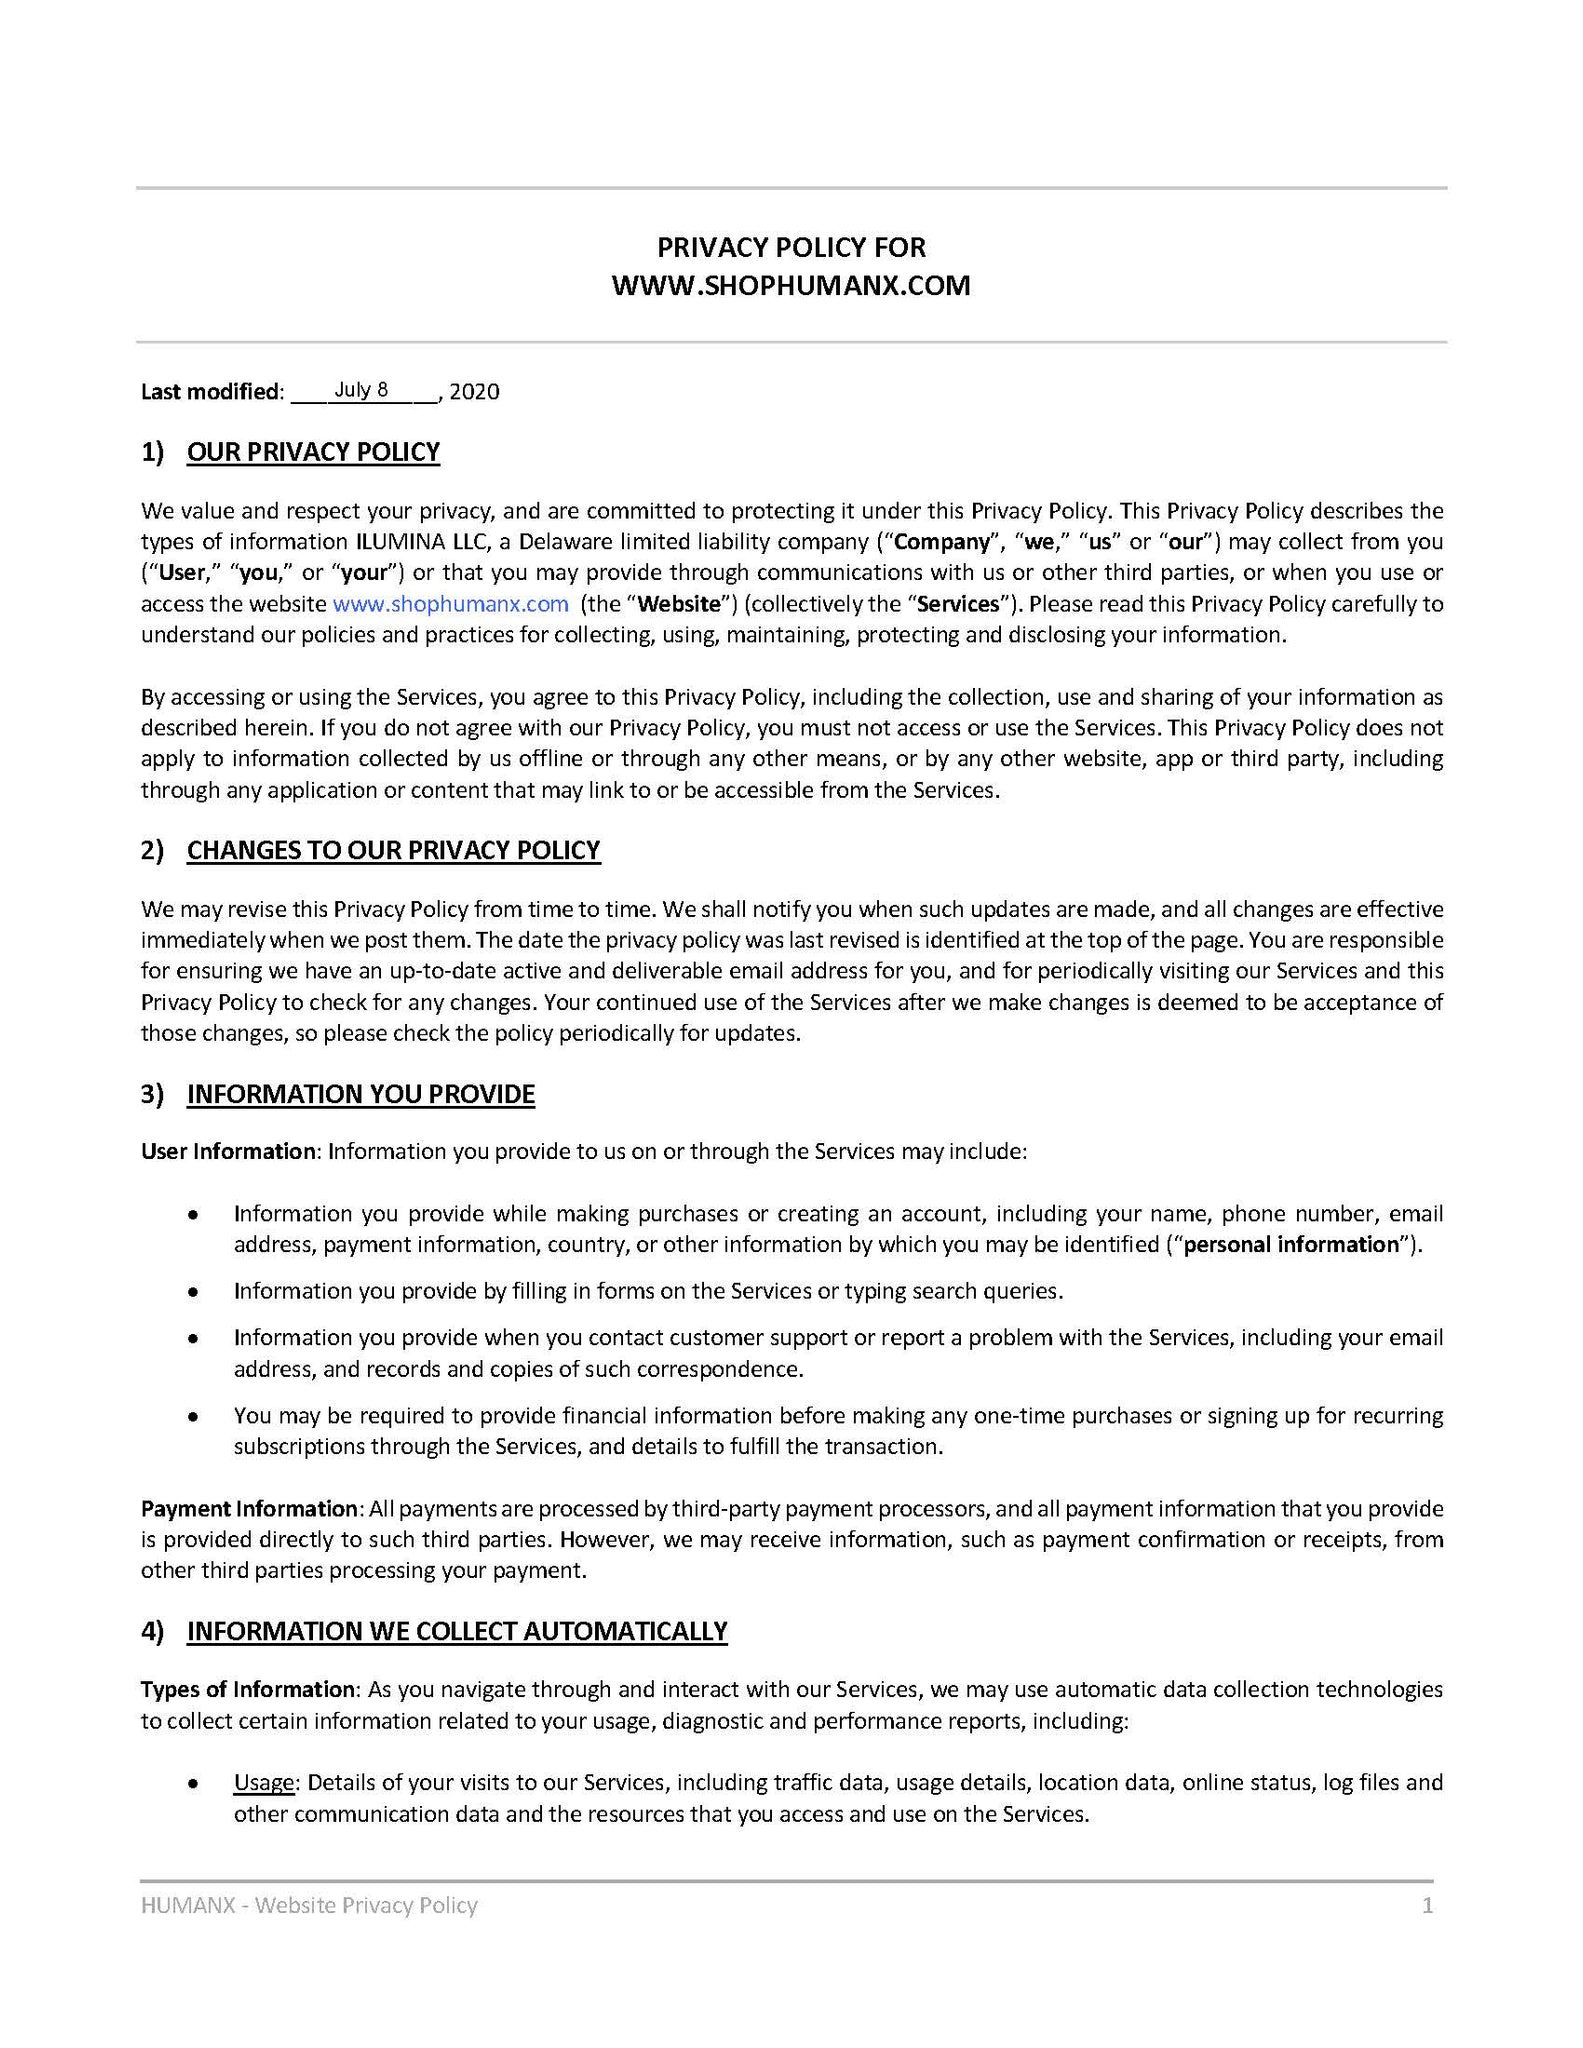 Privacy Policy - Page 1